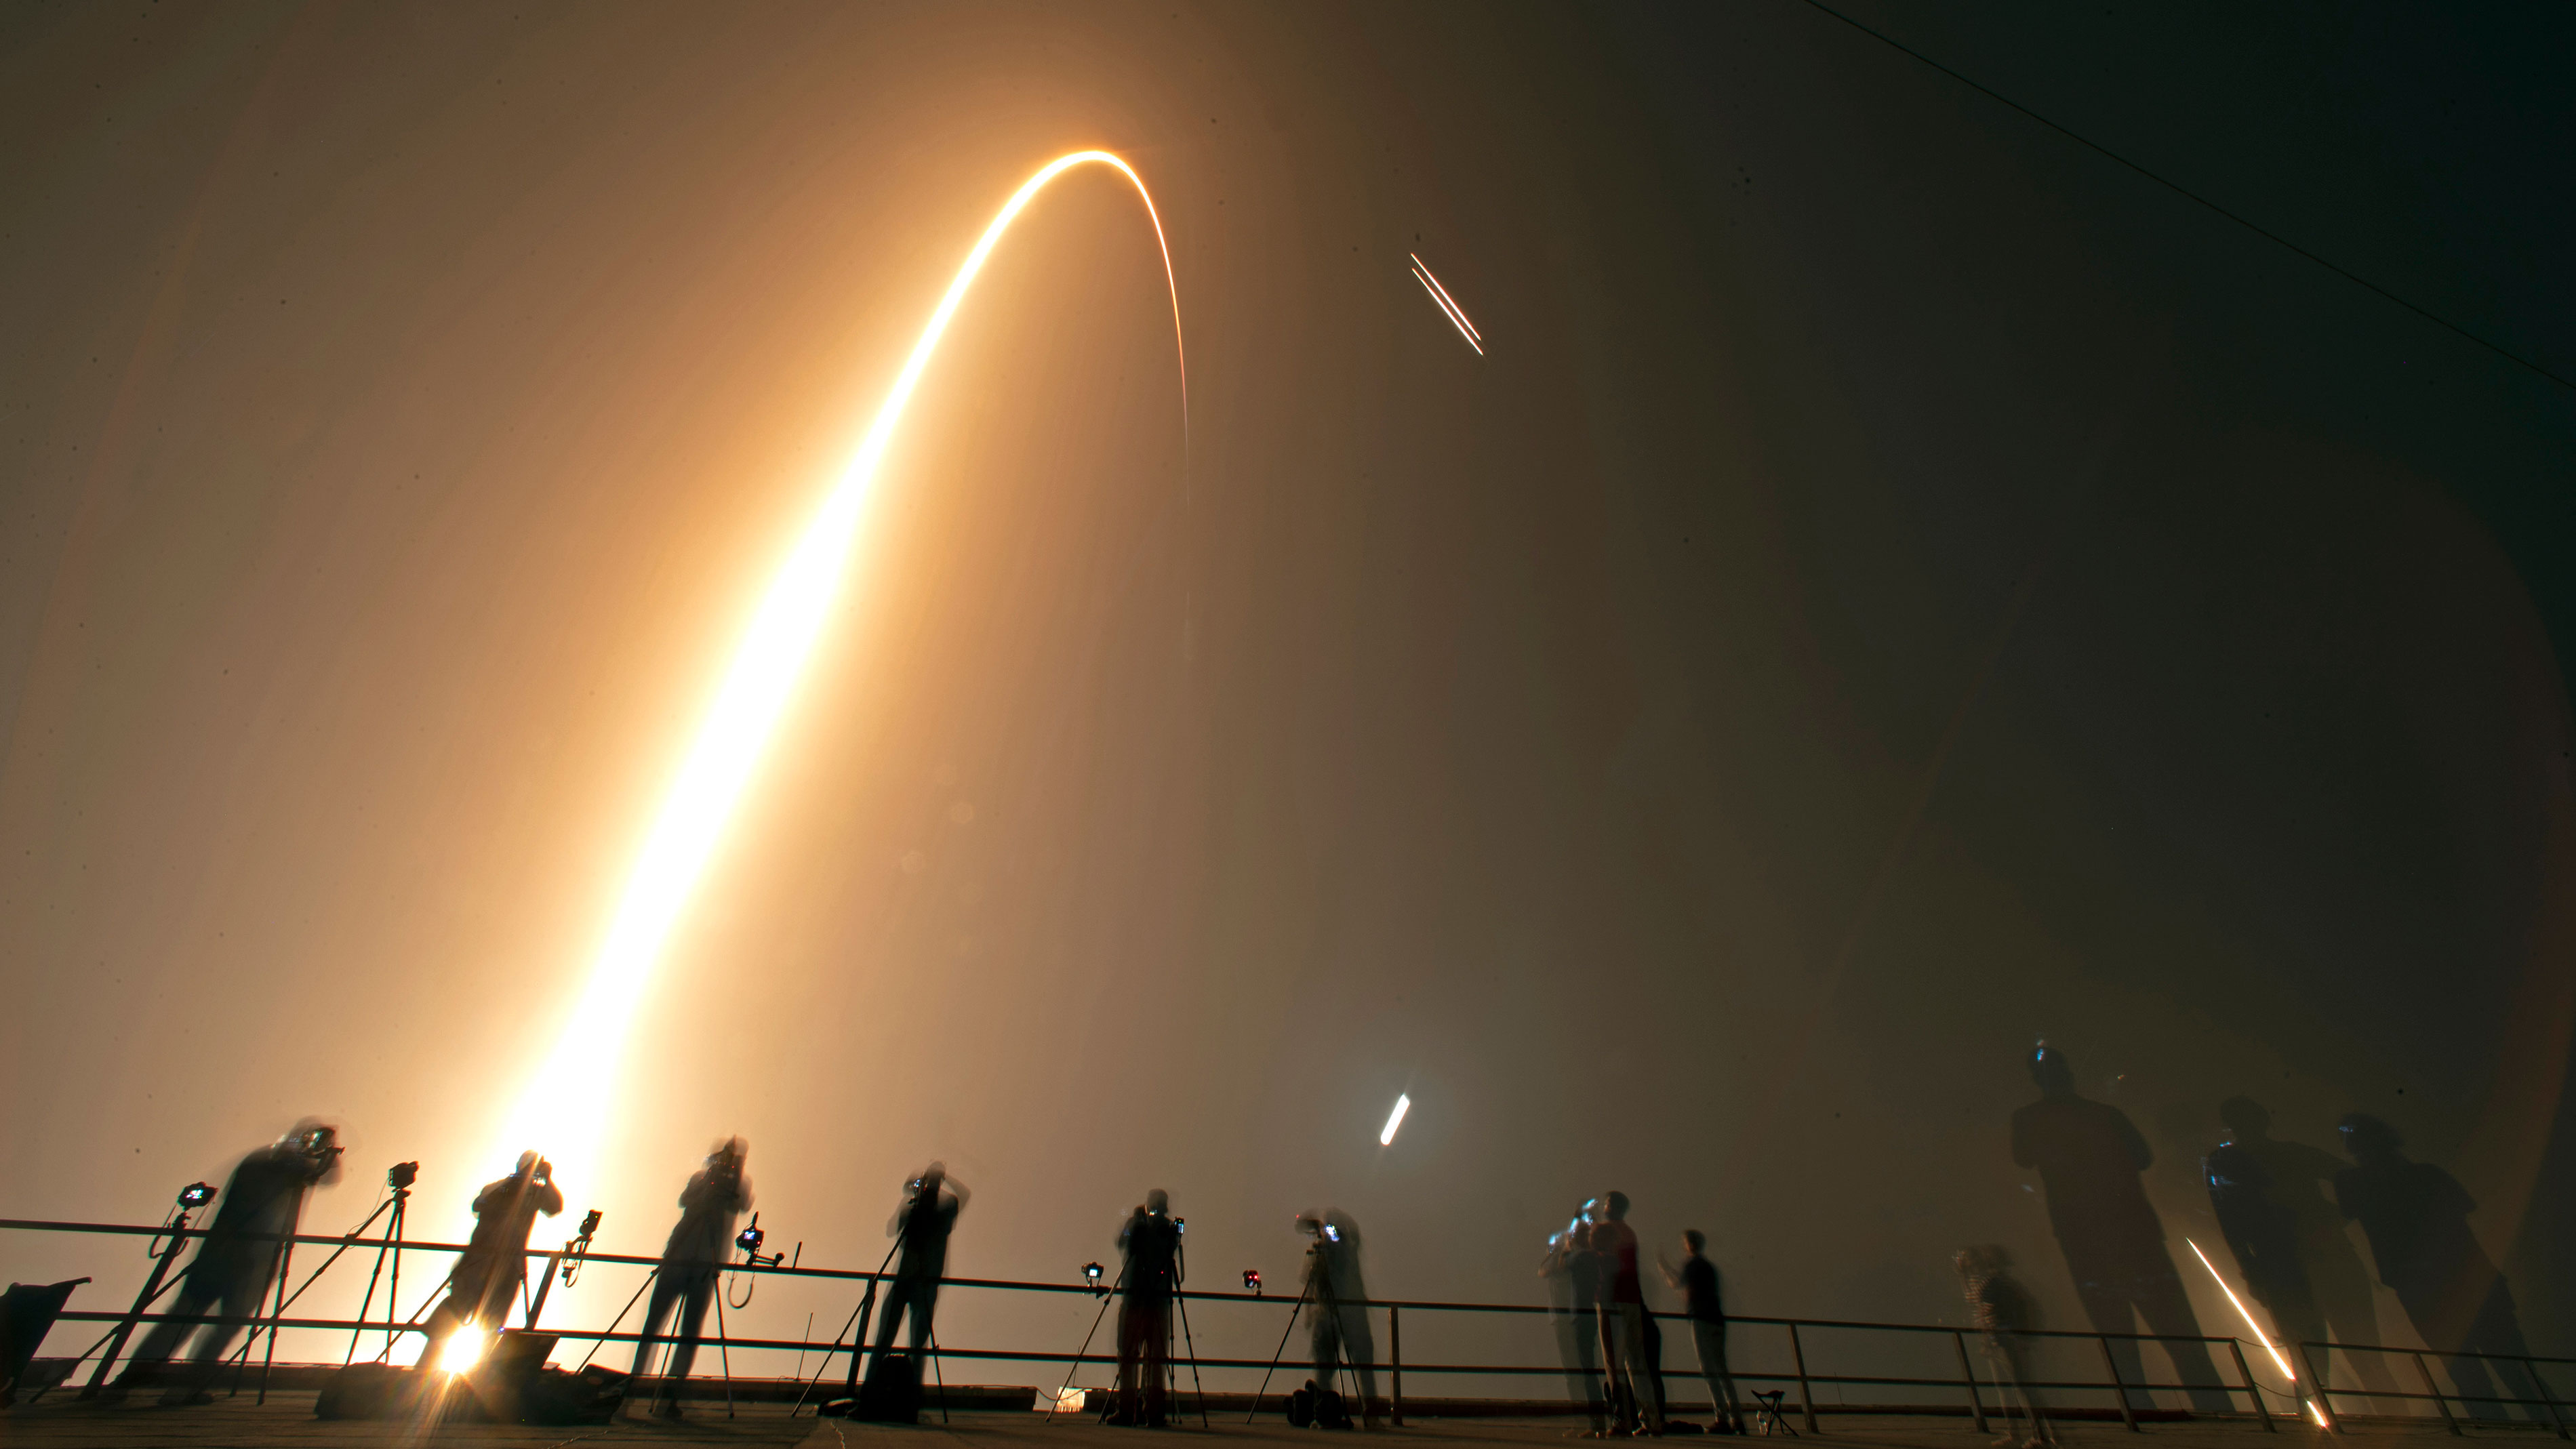 SpaceX's latest Falcon launch has put a solar sail into orbit